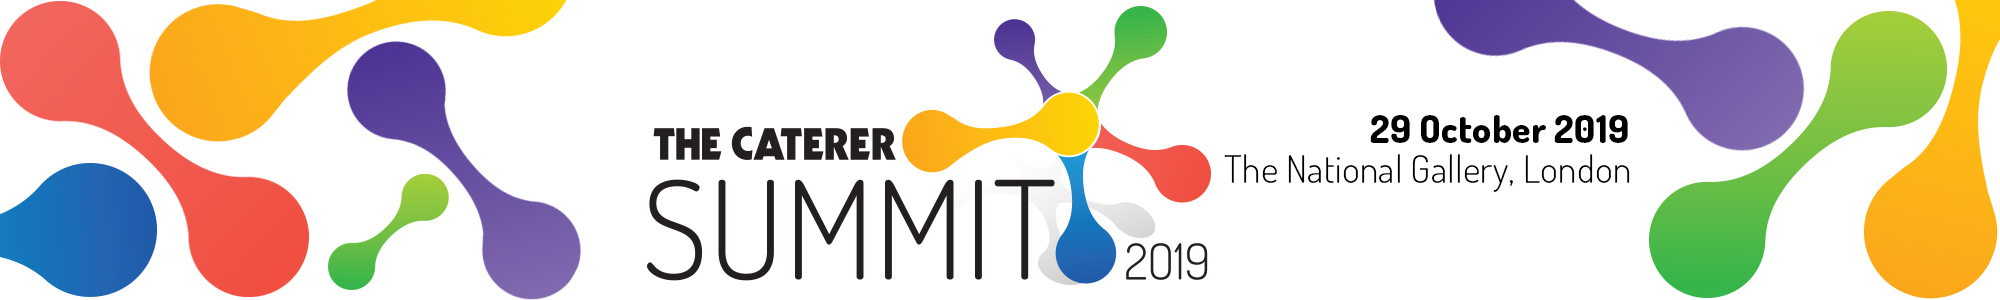 Caterer Summit Header